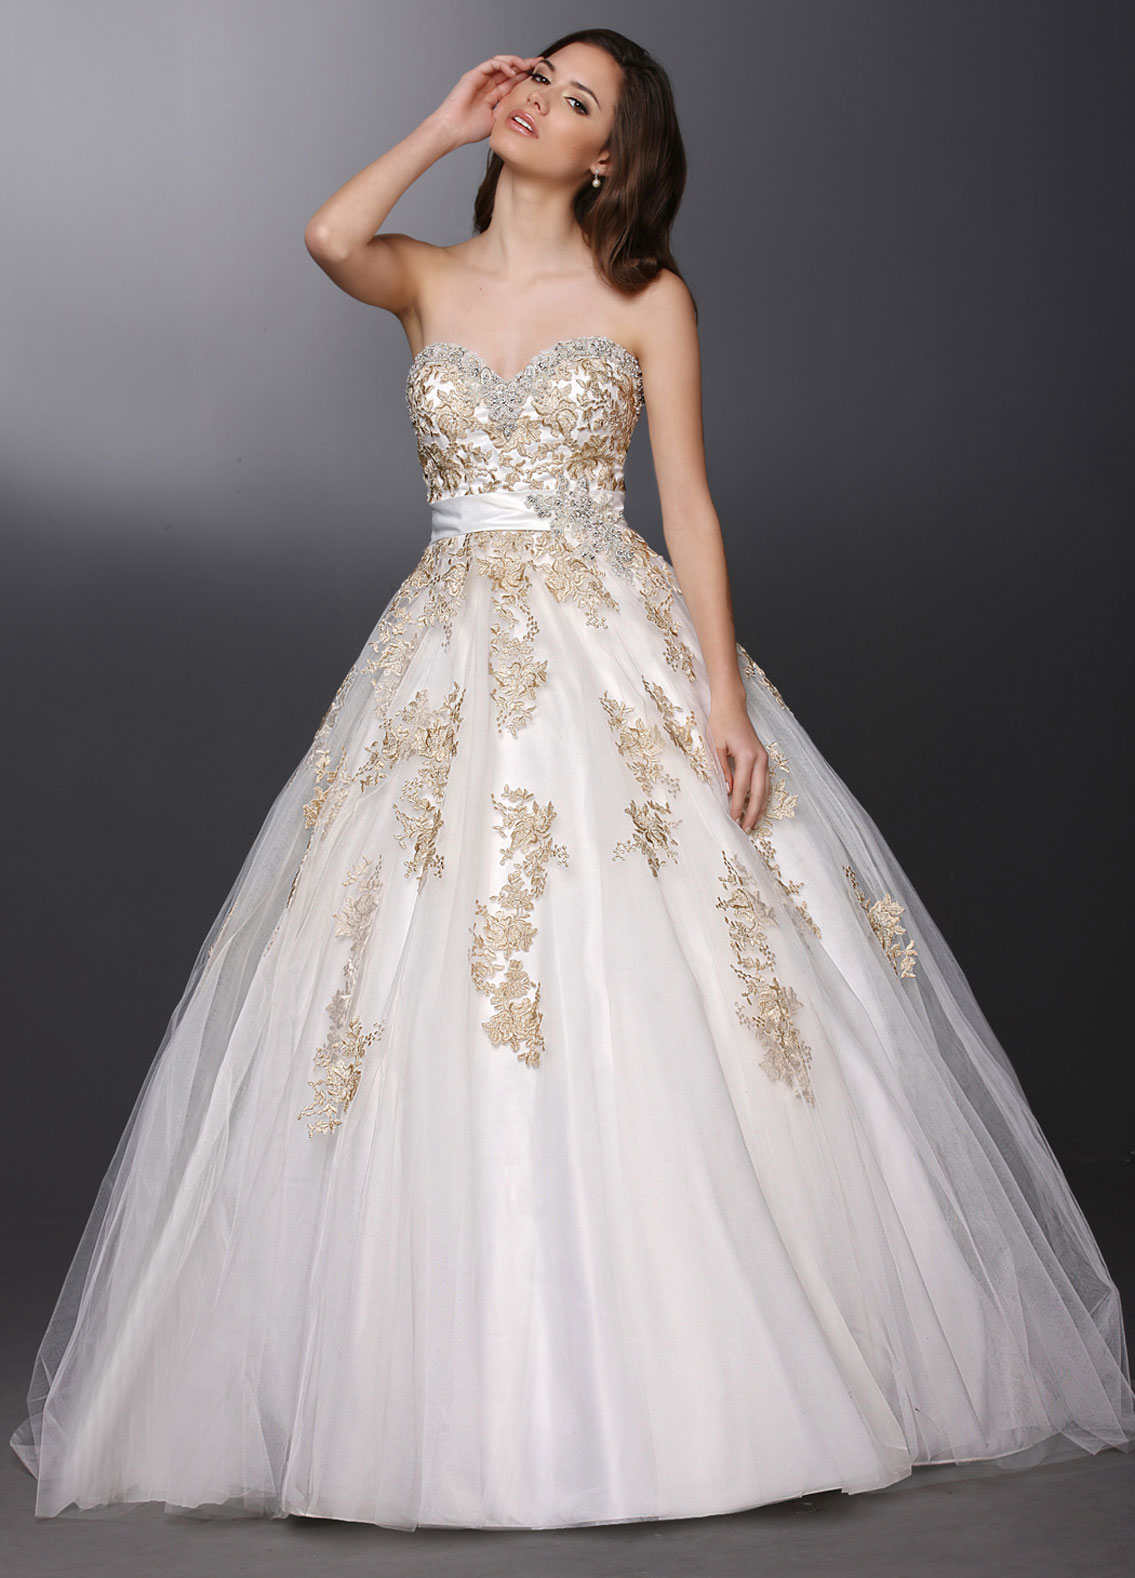 Cinderella Dreams: 9 Impressive Ball Gowns for Your Wedding Day ...